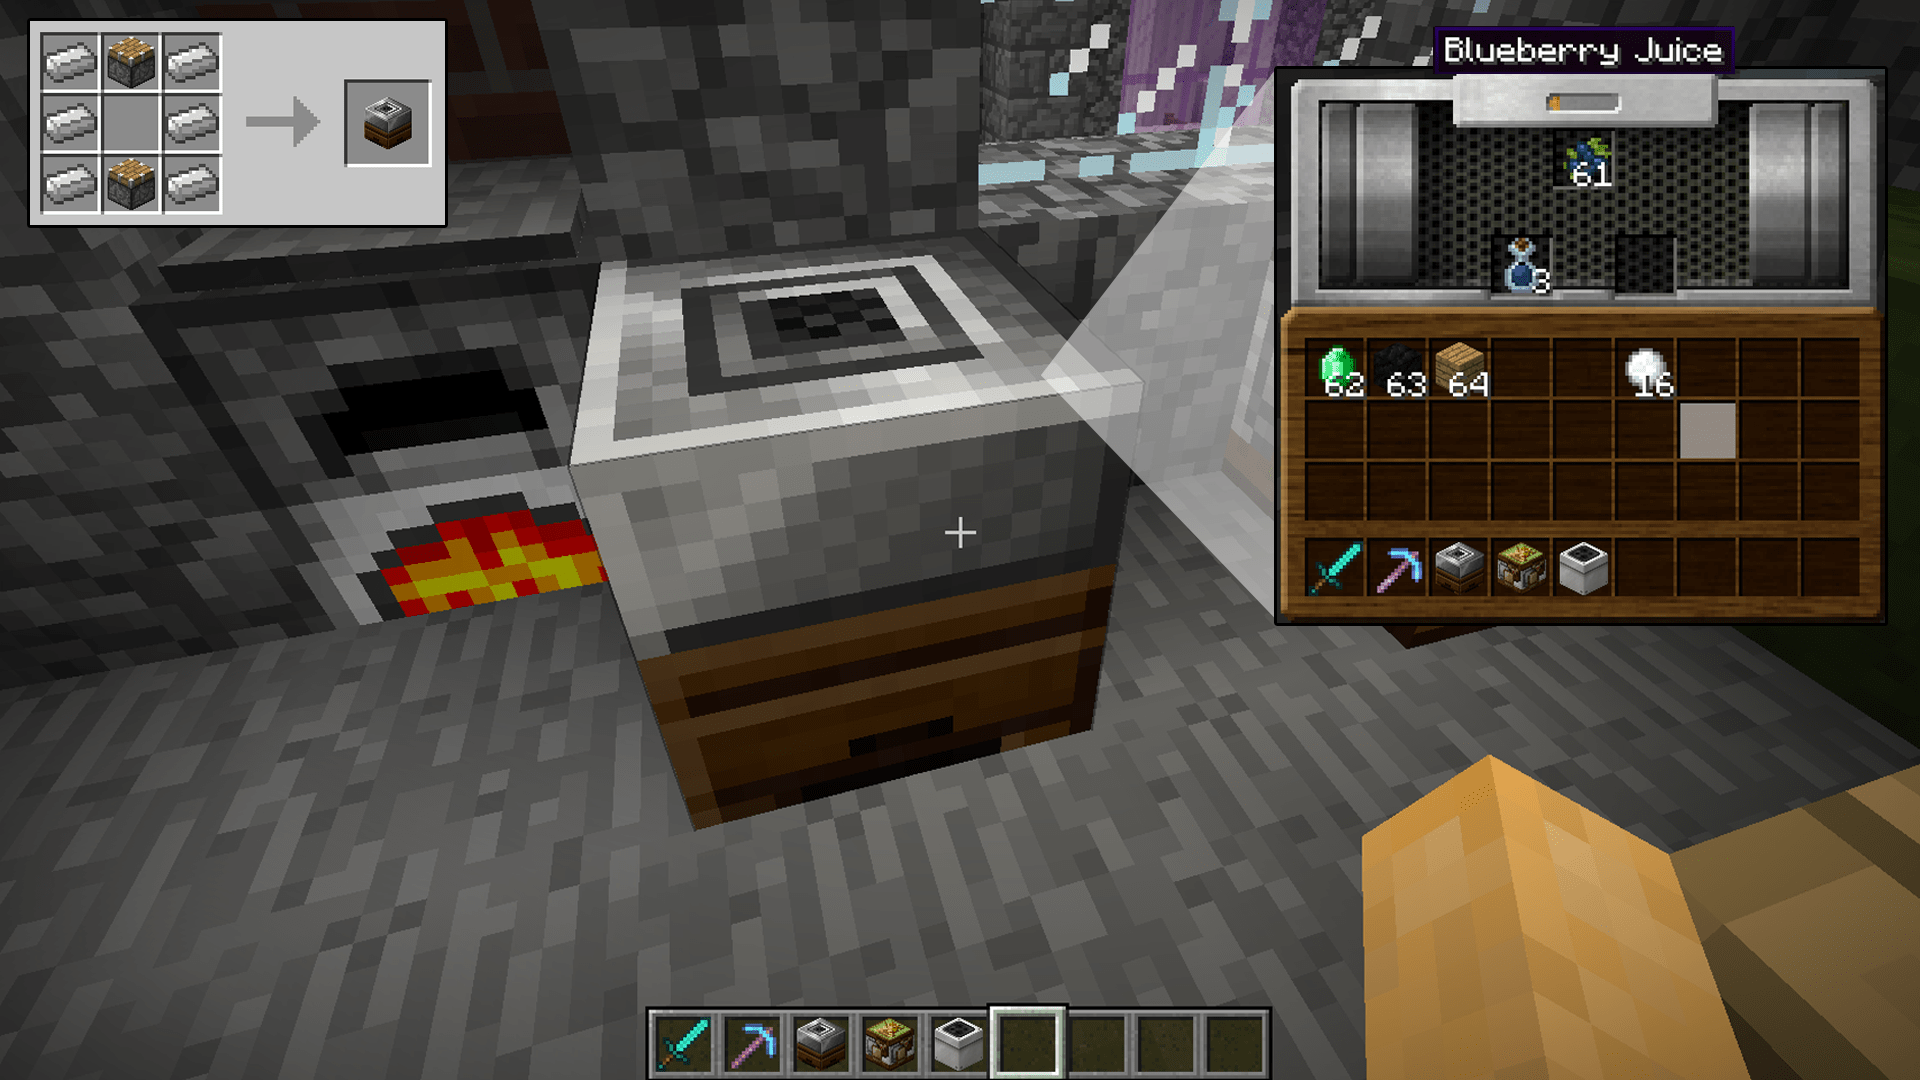 Minecraft Kitchen Mod 1.12.2 Pam 39s Harvestcraft Minecraft Mods